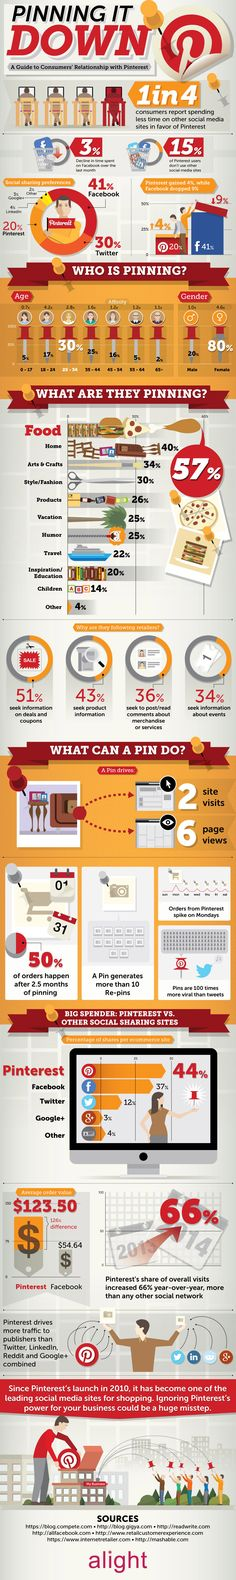 Pinning it Down: A Guide to Consumers' Relationship with Pinterest #Pinterest #SocialMedia #Business #infographic